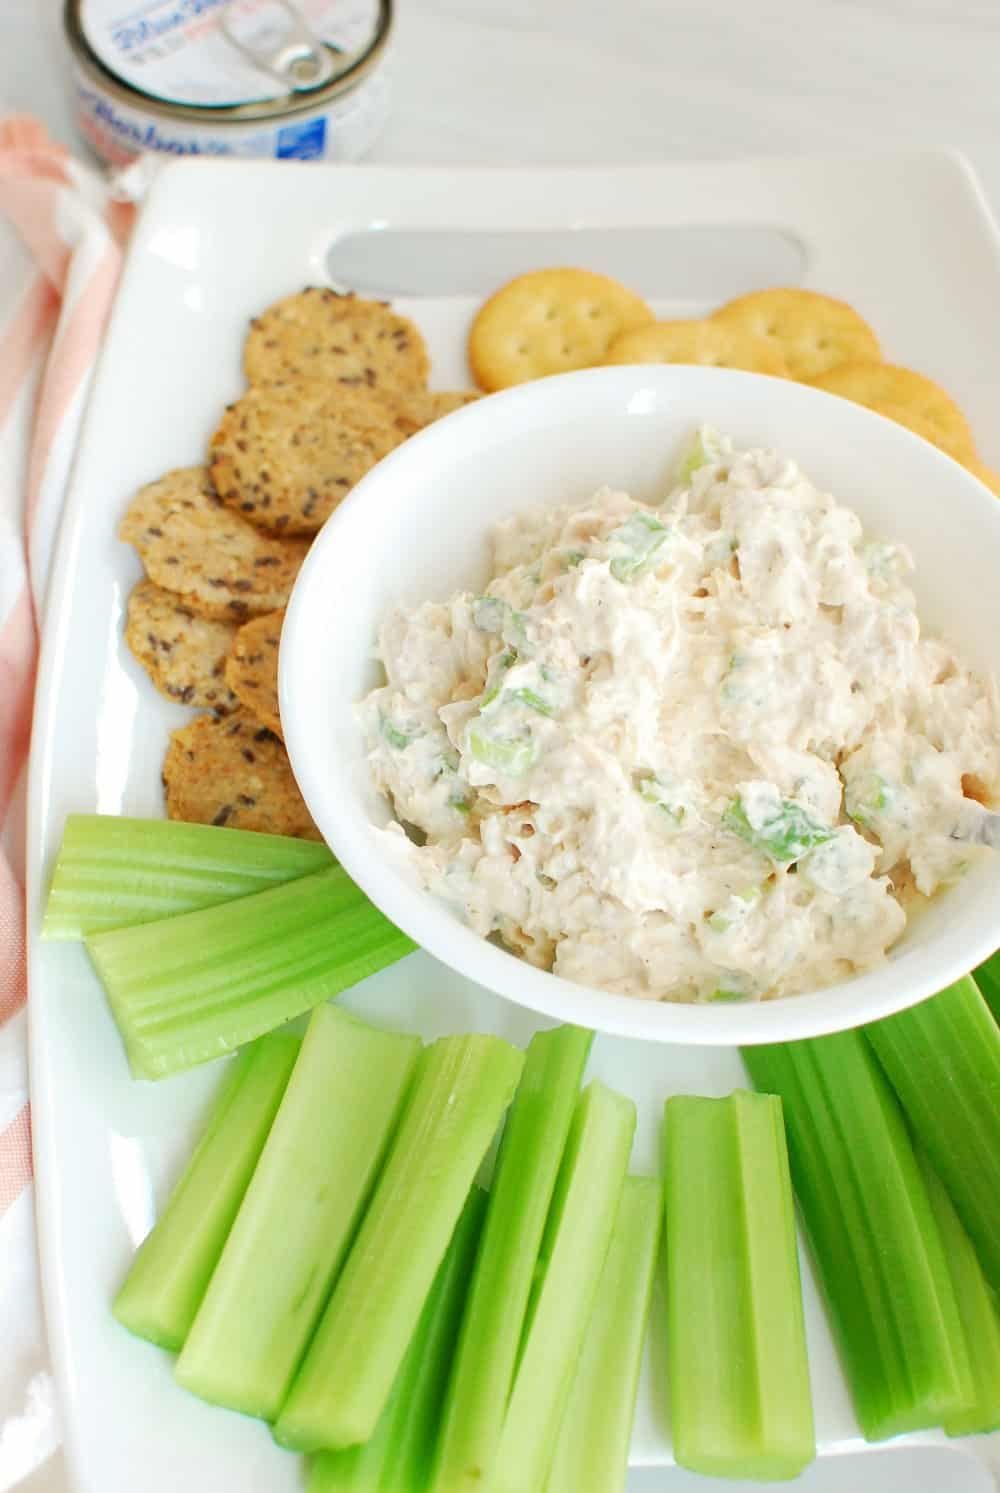 cold version of canned salmon dip next to celery sticks and crackers